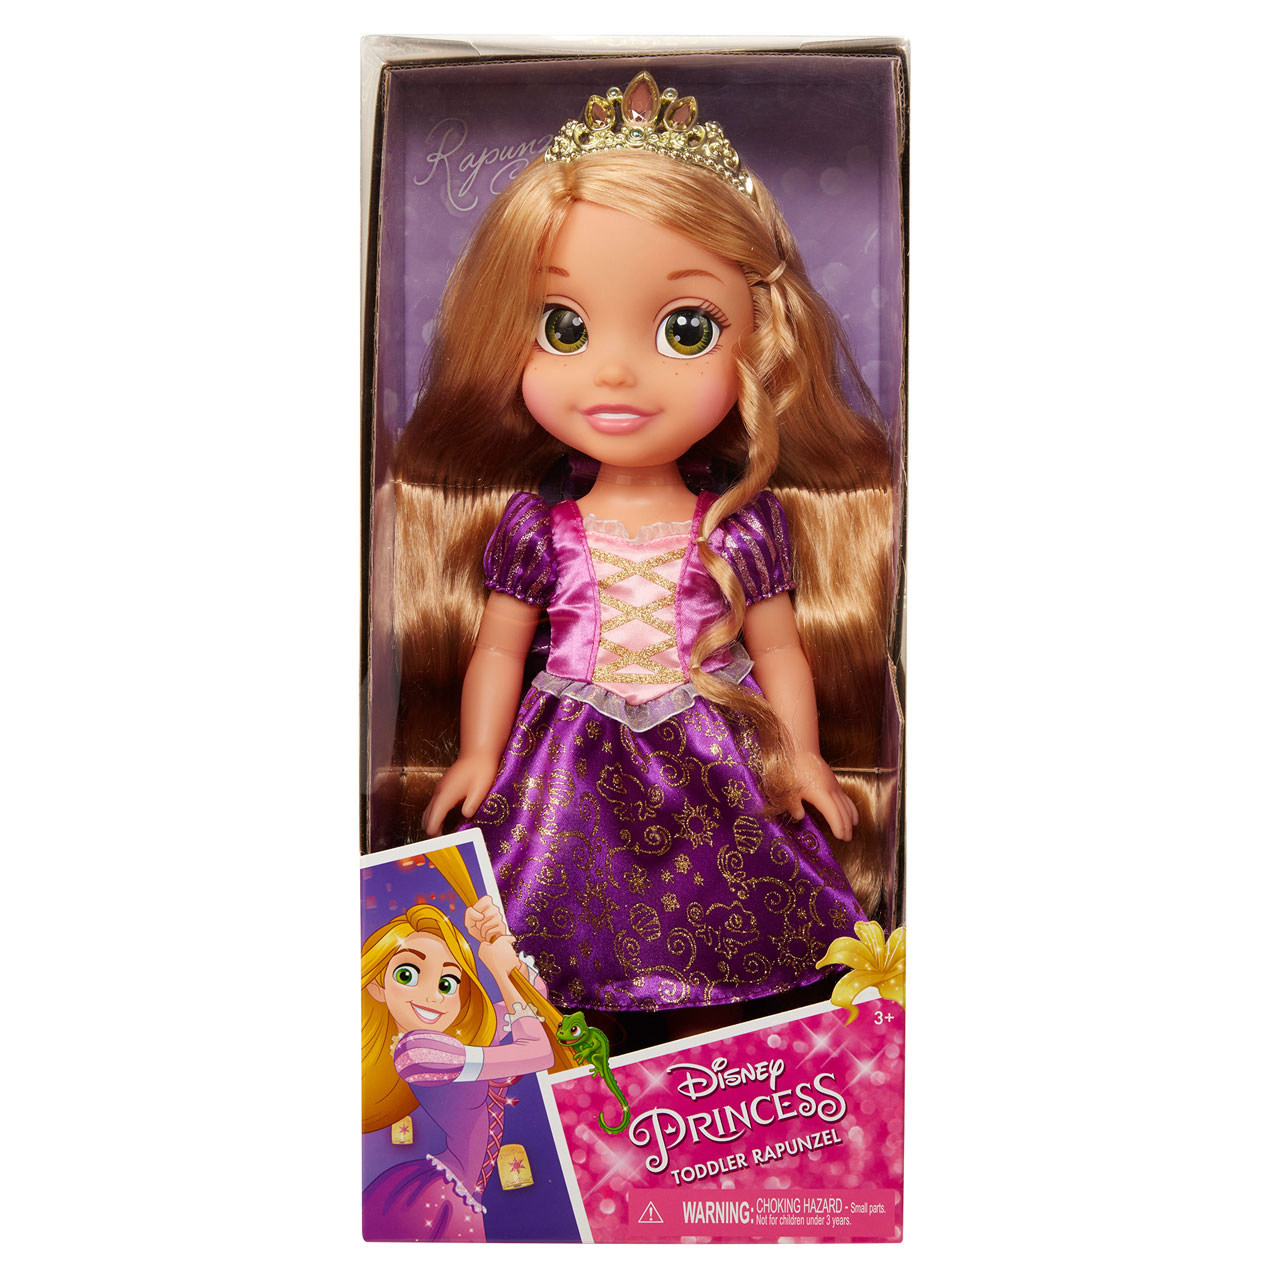 Disney Princess Doll With Lens Eyes on Number 10 Puzzle